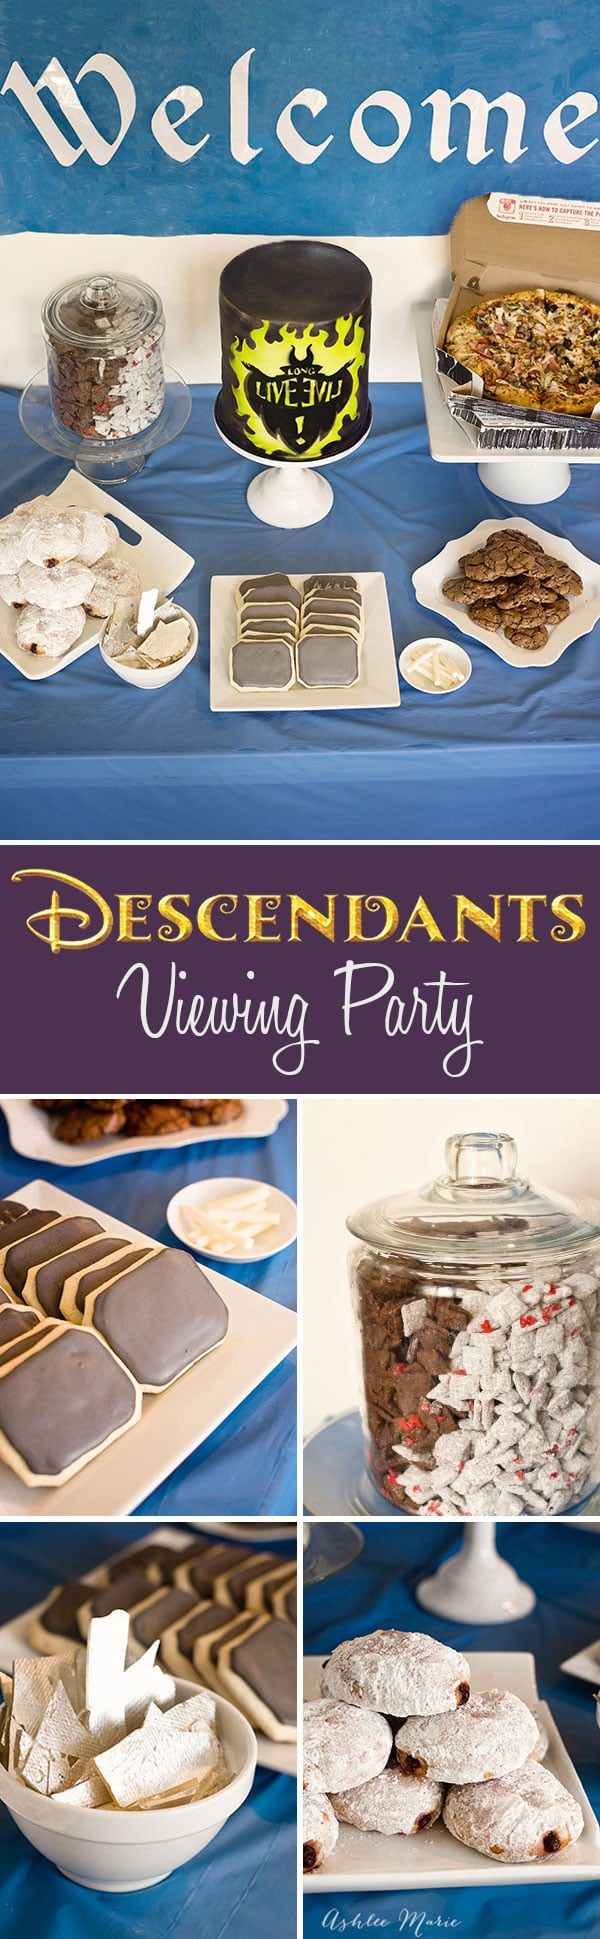 Throw your own party for Disneys Descendants movie, with cookie chalkboards, candy chalk, graffiti cake, DeVille puppy chow, love potion cookies, edible magic mirrors, and more